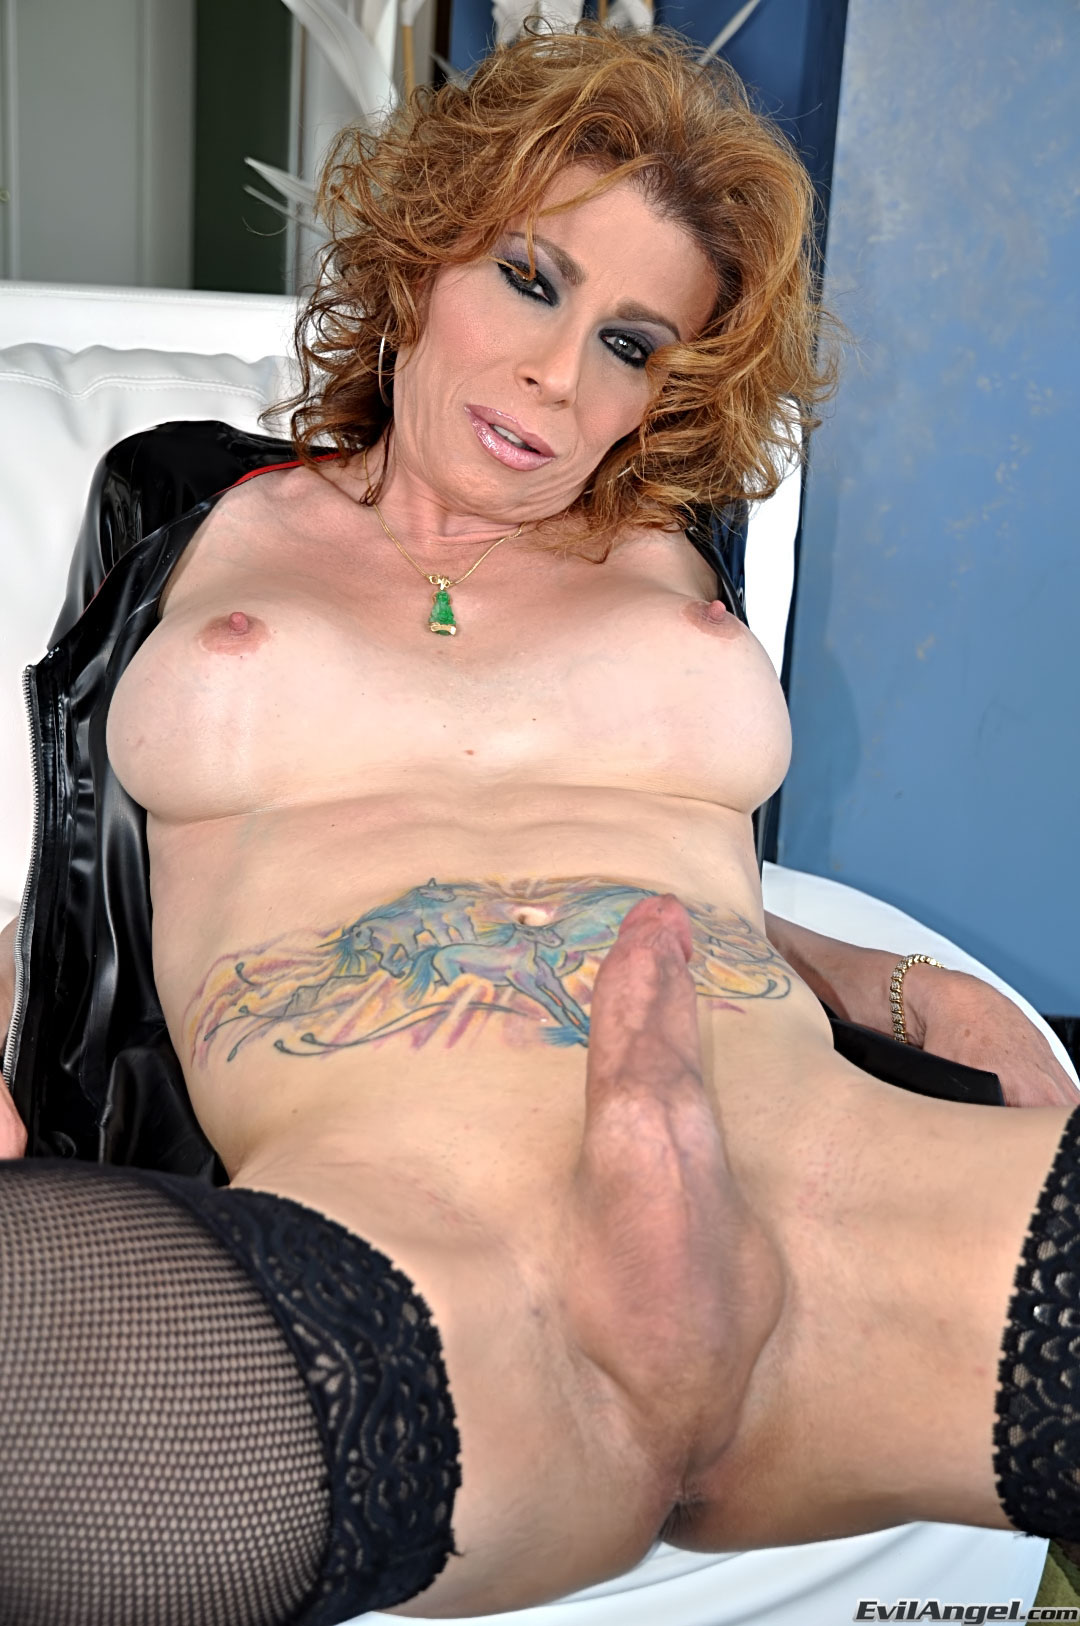 Granny tranny shemale photos